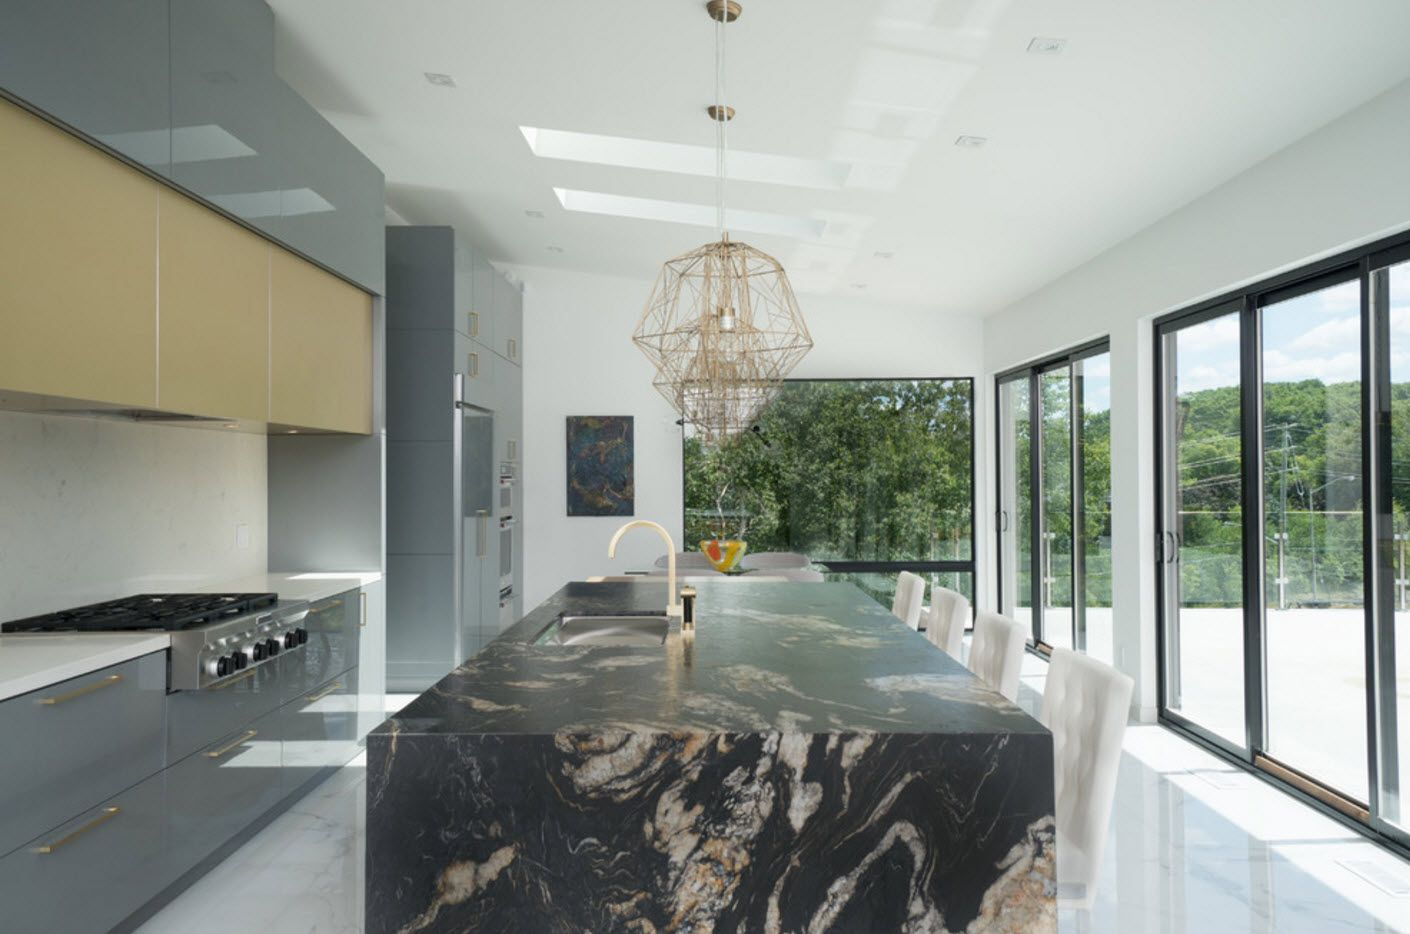 Nice dark marble imitation of the centered kitchen island at the large private house studio